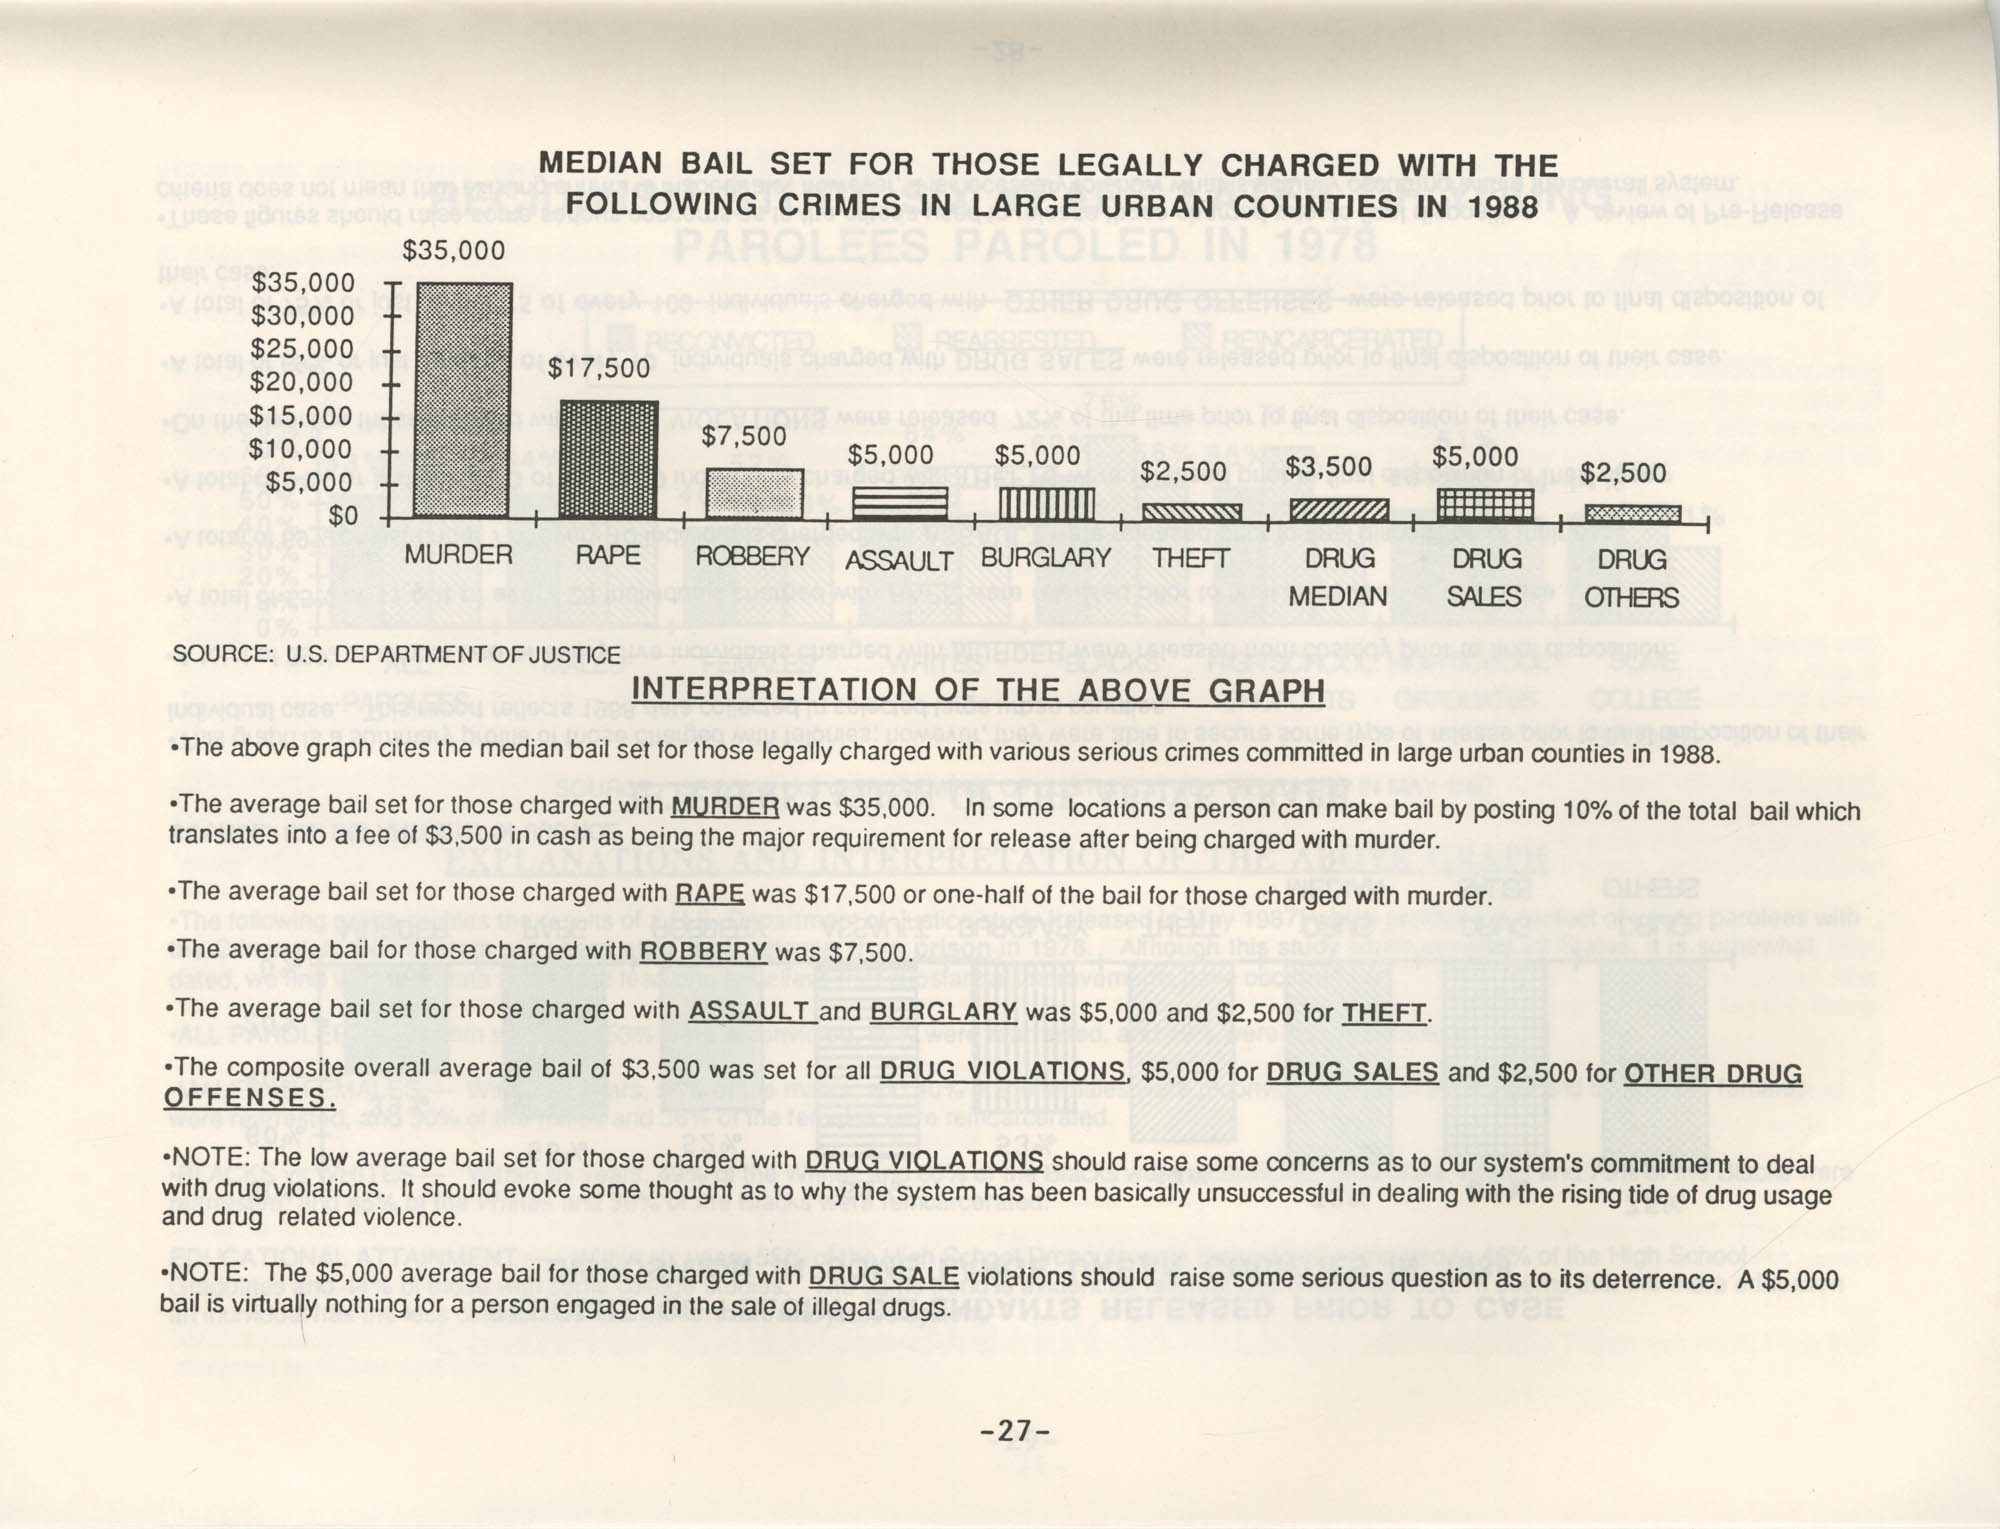 Crime and Criminal Activities in the U.S.A., NAACP National Board of Directors, Page 27